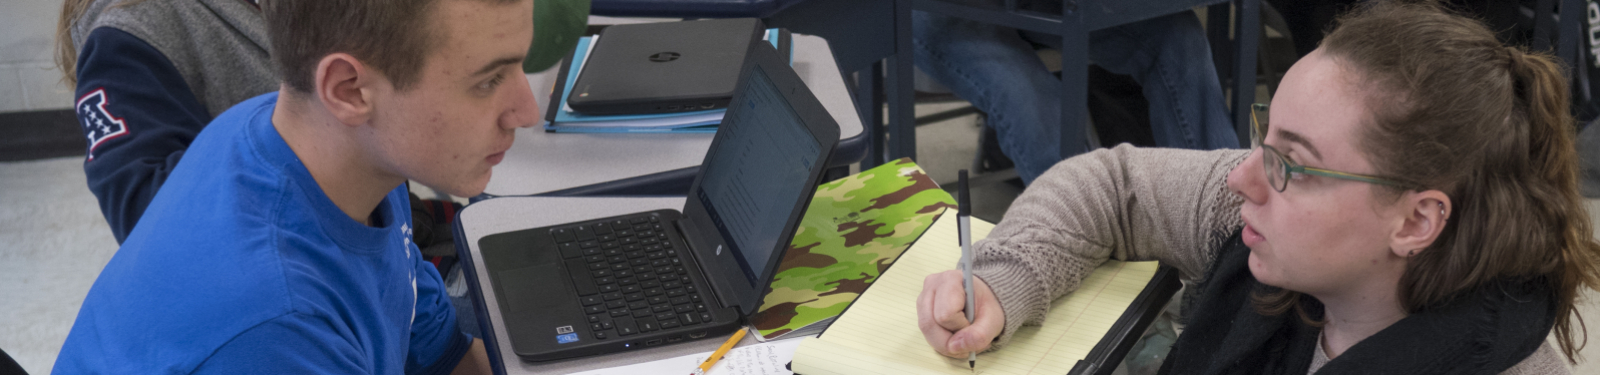 Teacher assisting student at desk with laptop